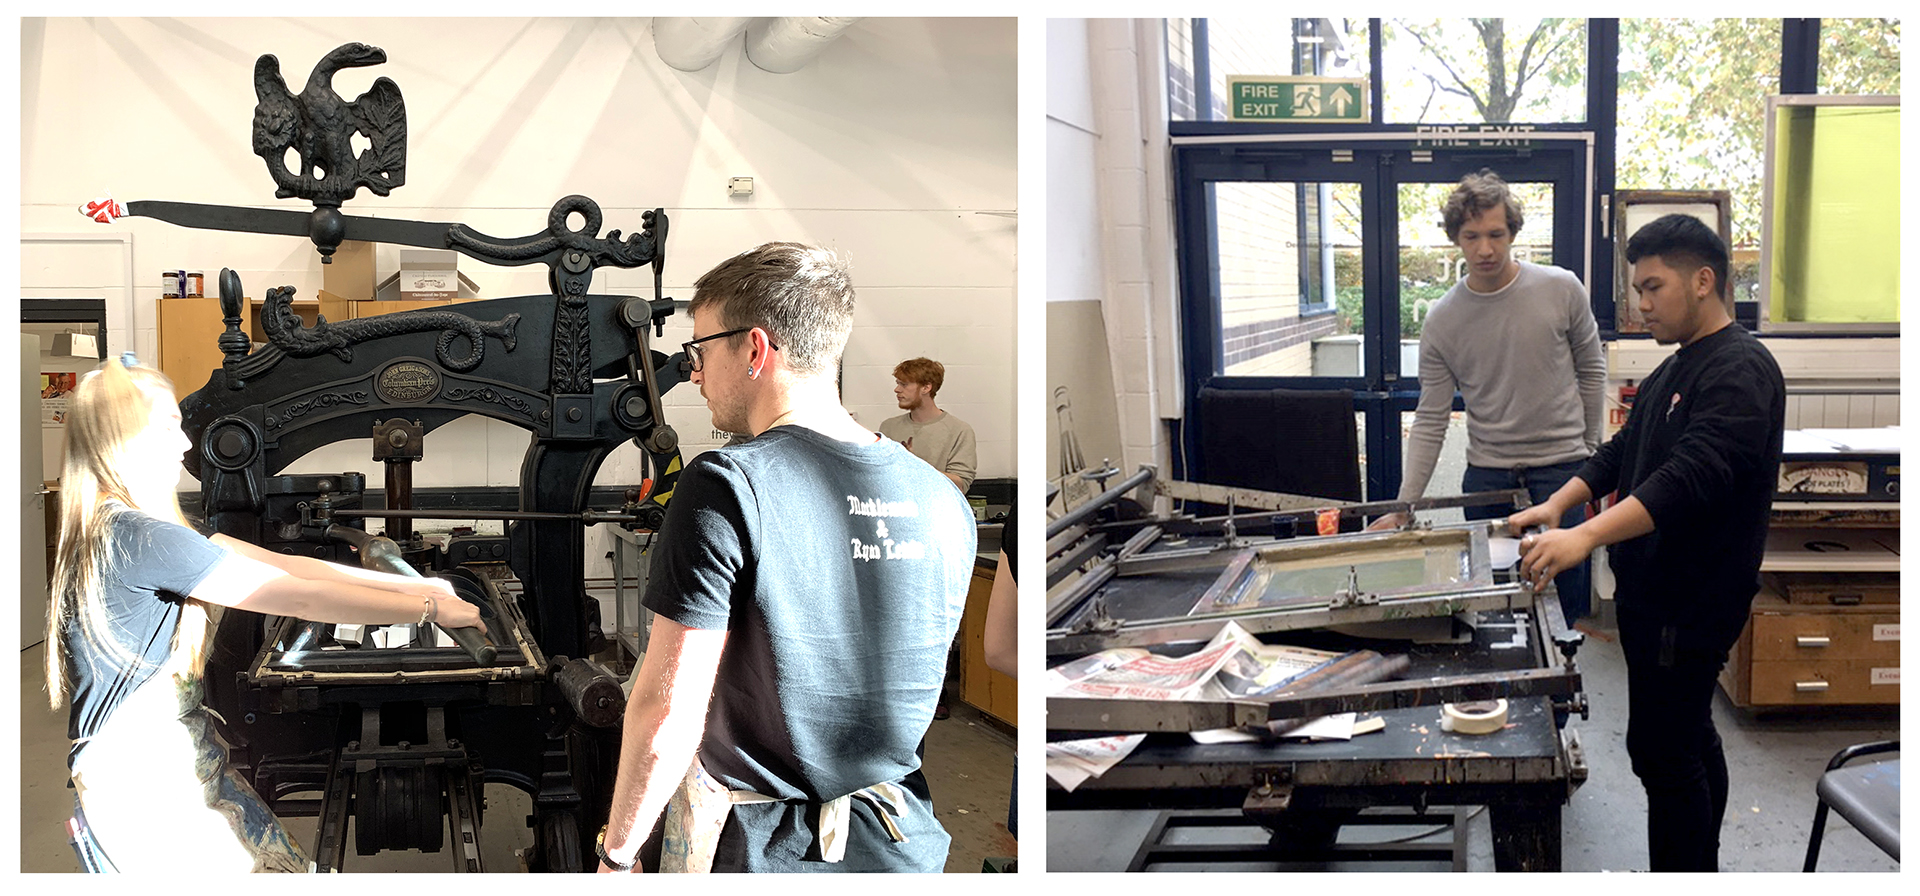 2 photographs of students using the print room facilities